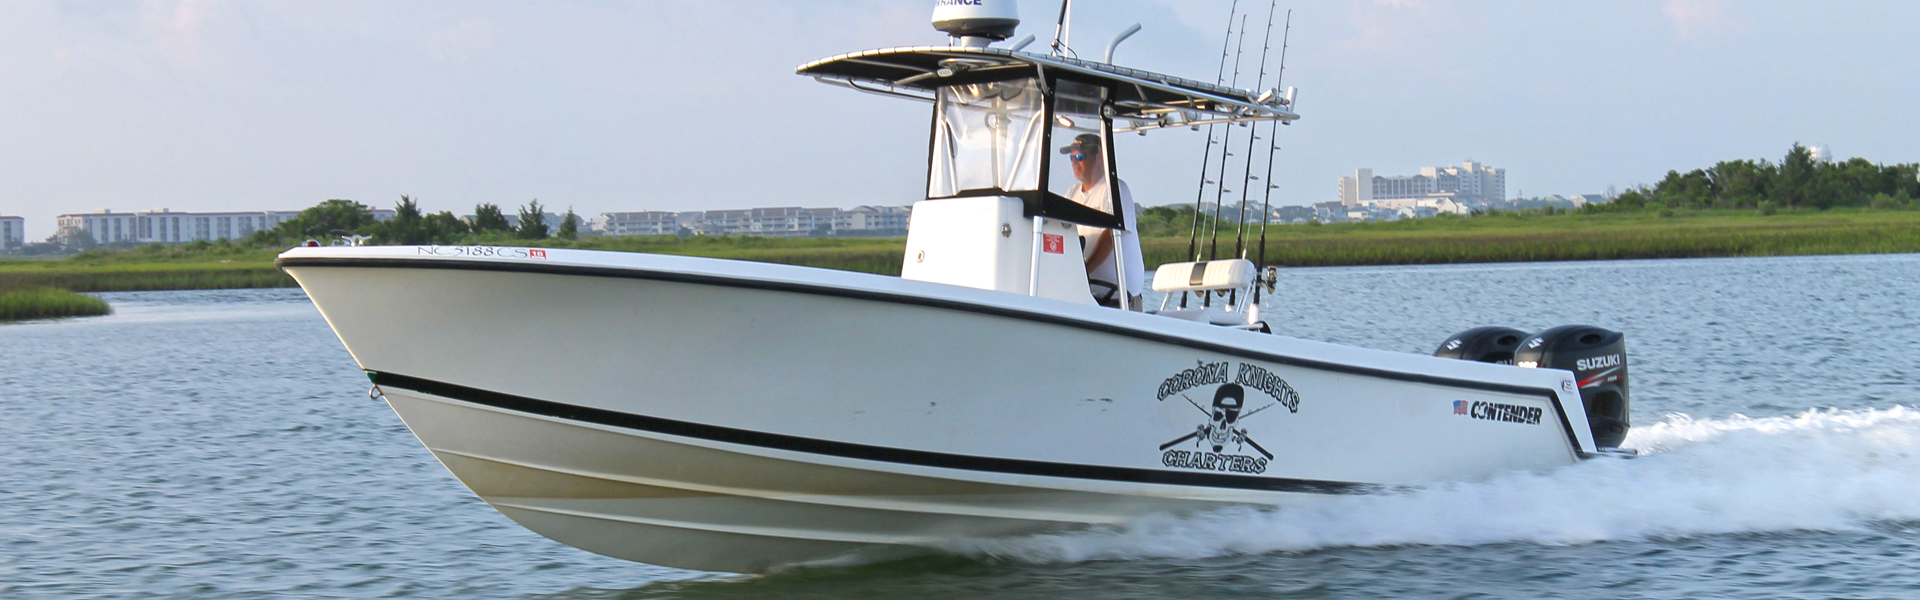 Fishing charters in wilmington nc wrightsville beach for Wrightsville beach fishing charters